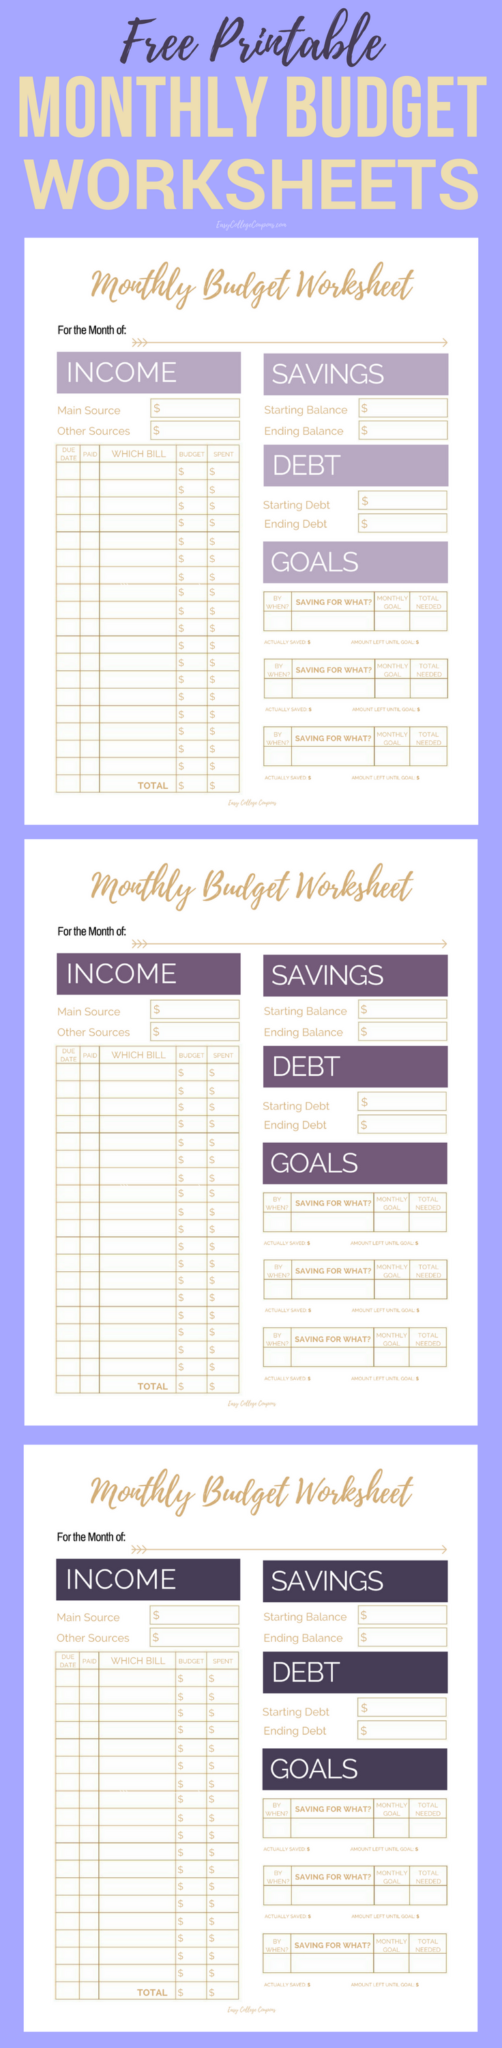 fix your finances asap with my free simple monthly budget template